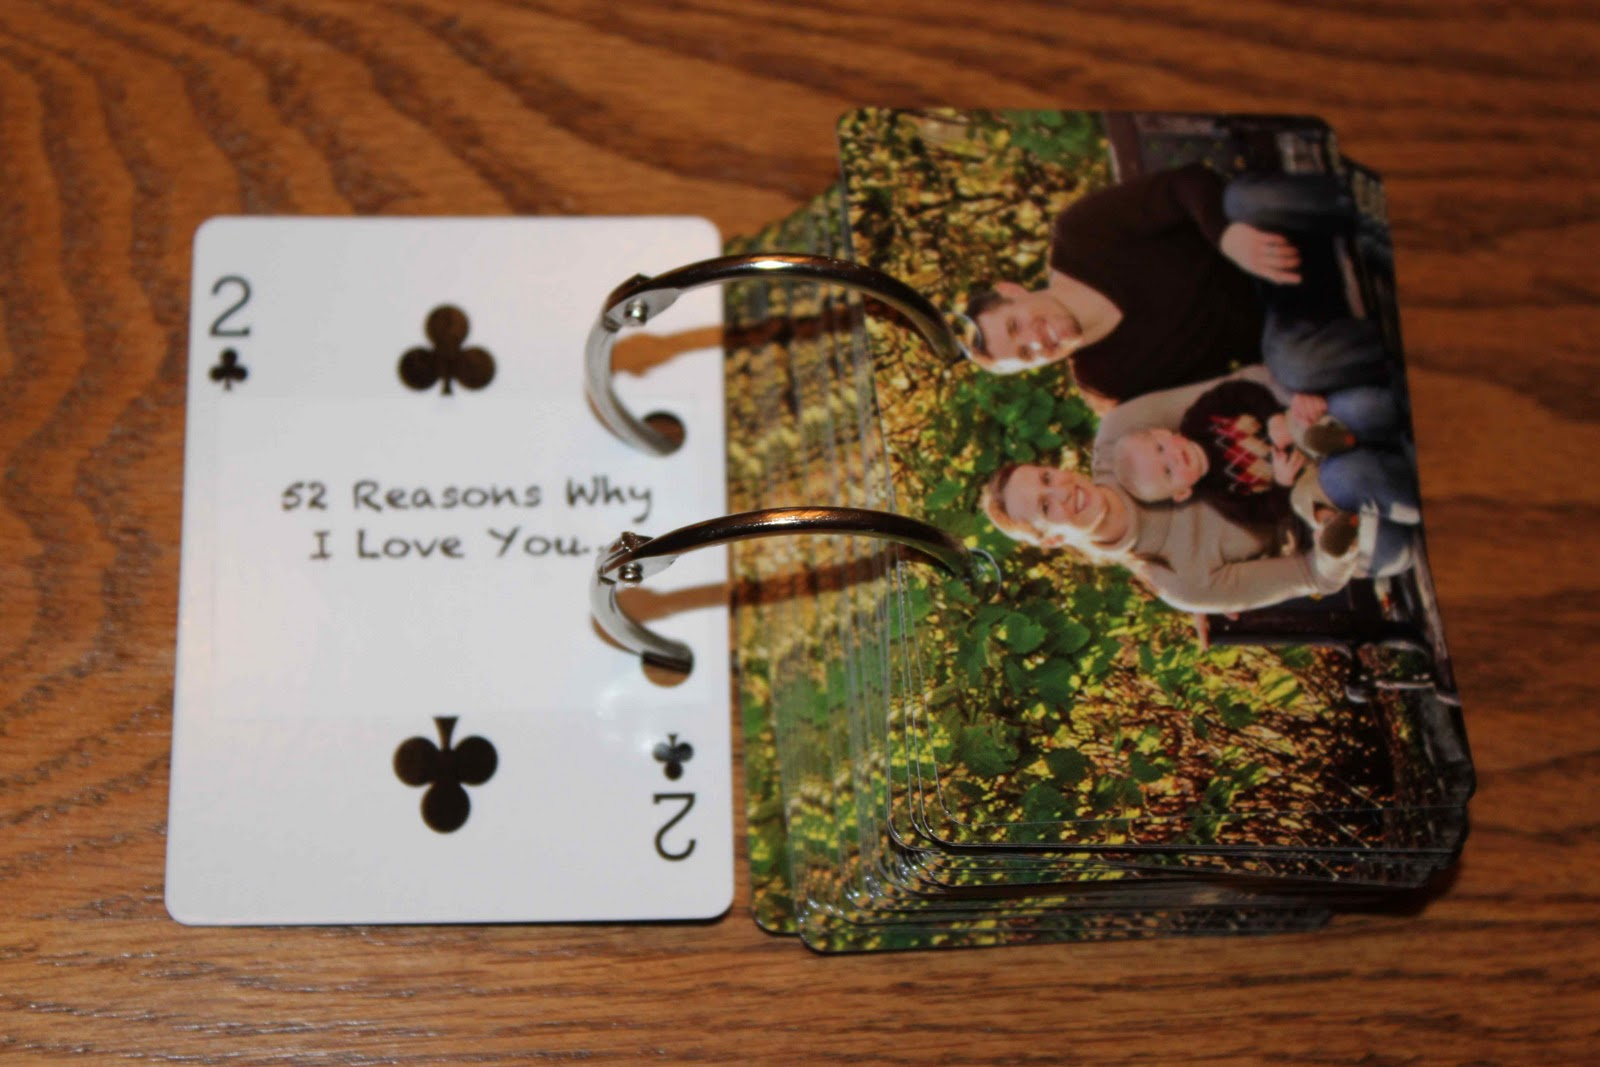 Forty Fifth Wedding Anniversary Gifts: Baby Steps: 52 Reasons